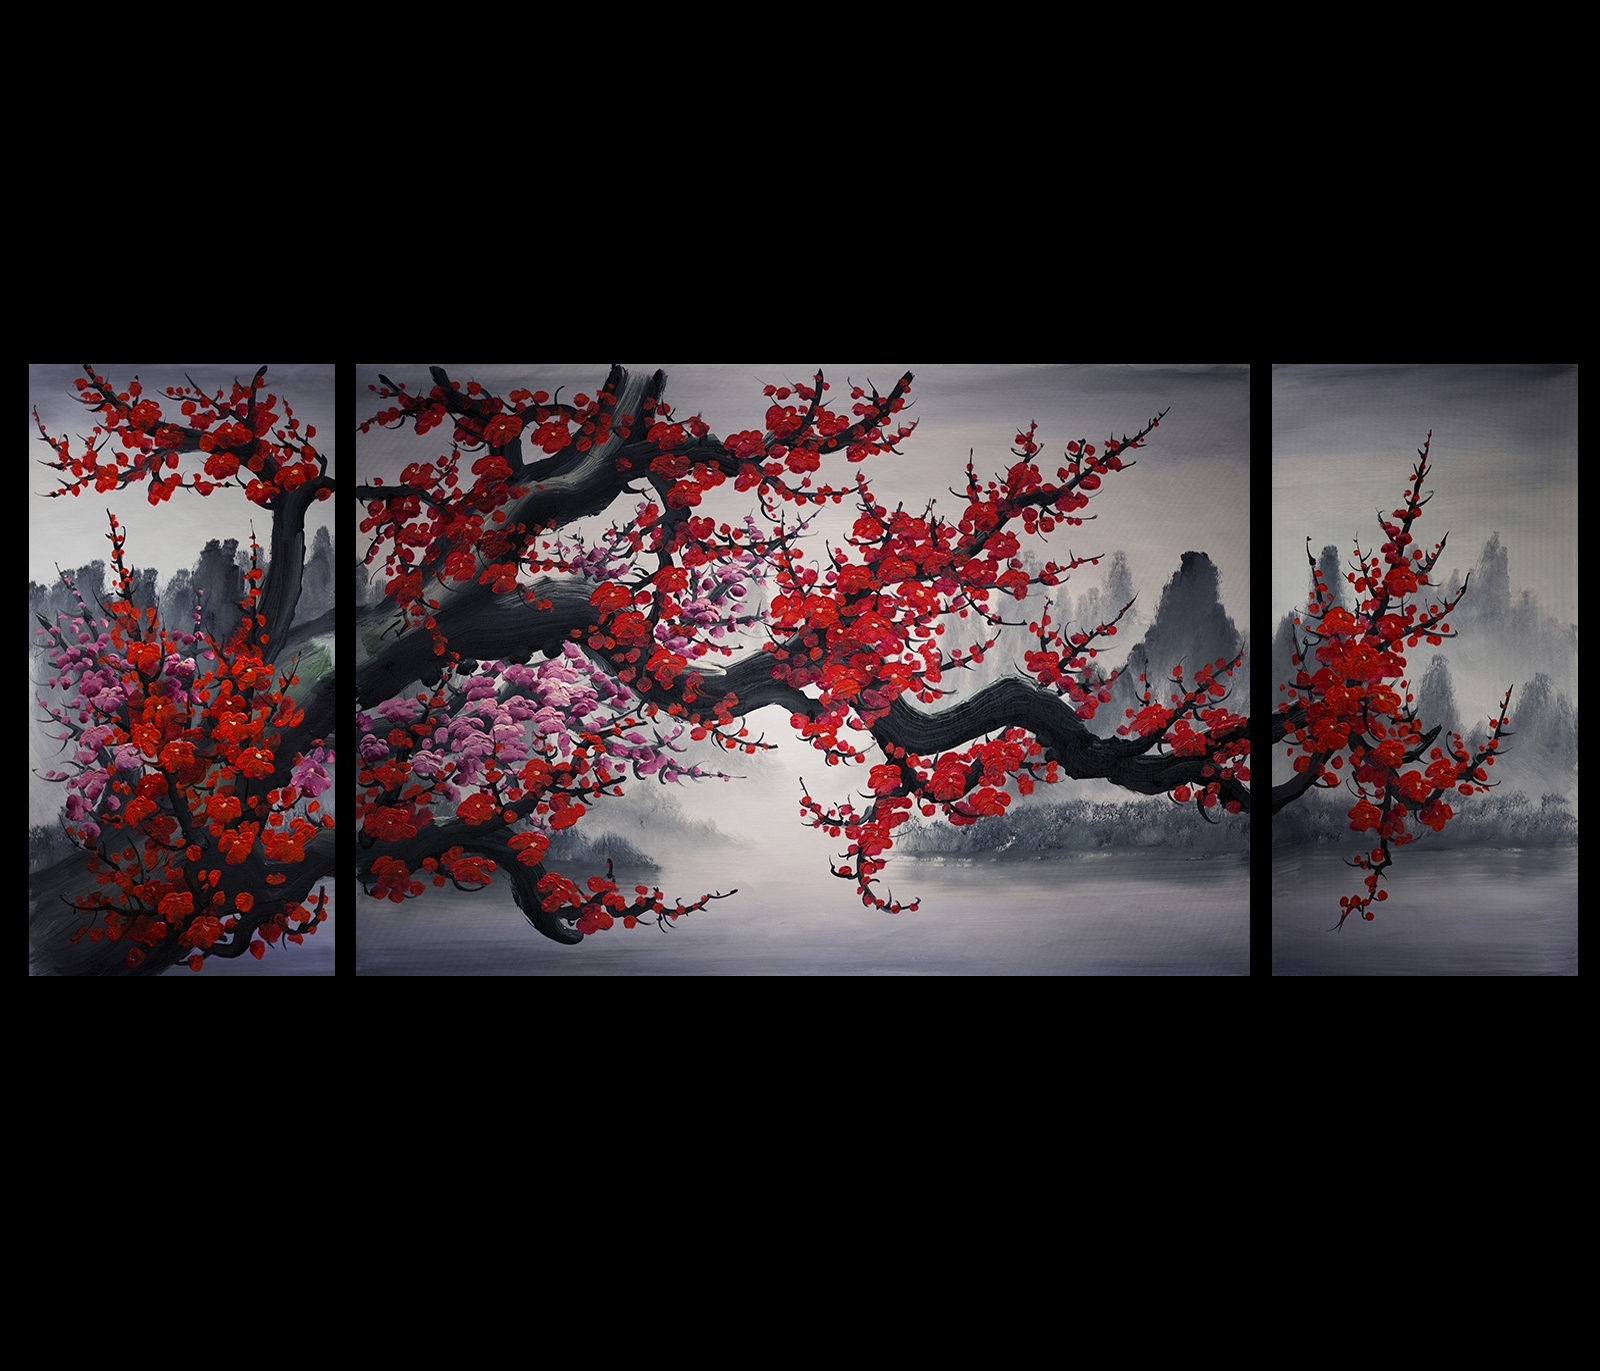 Chinese Cherry Blossom Painting Original Modern Wall Art Decor Within Newest Asian Wall Art Panels (View 5 of 15)